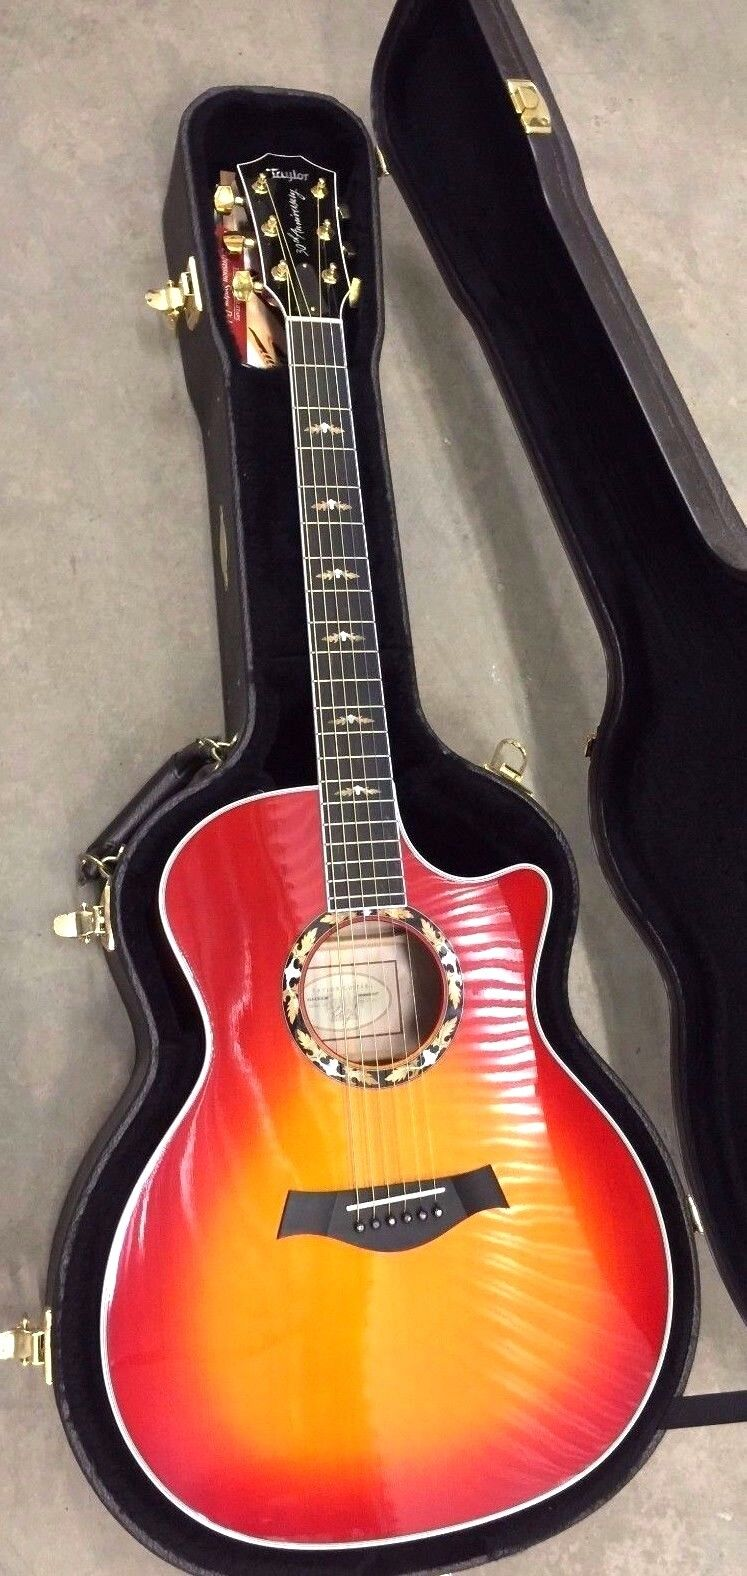 Taylor 614CE L30 30th Annivesary Limited Ed. ROT Acoustic Electric Guitar 2003